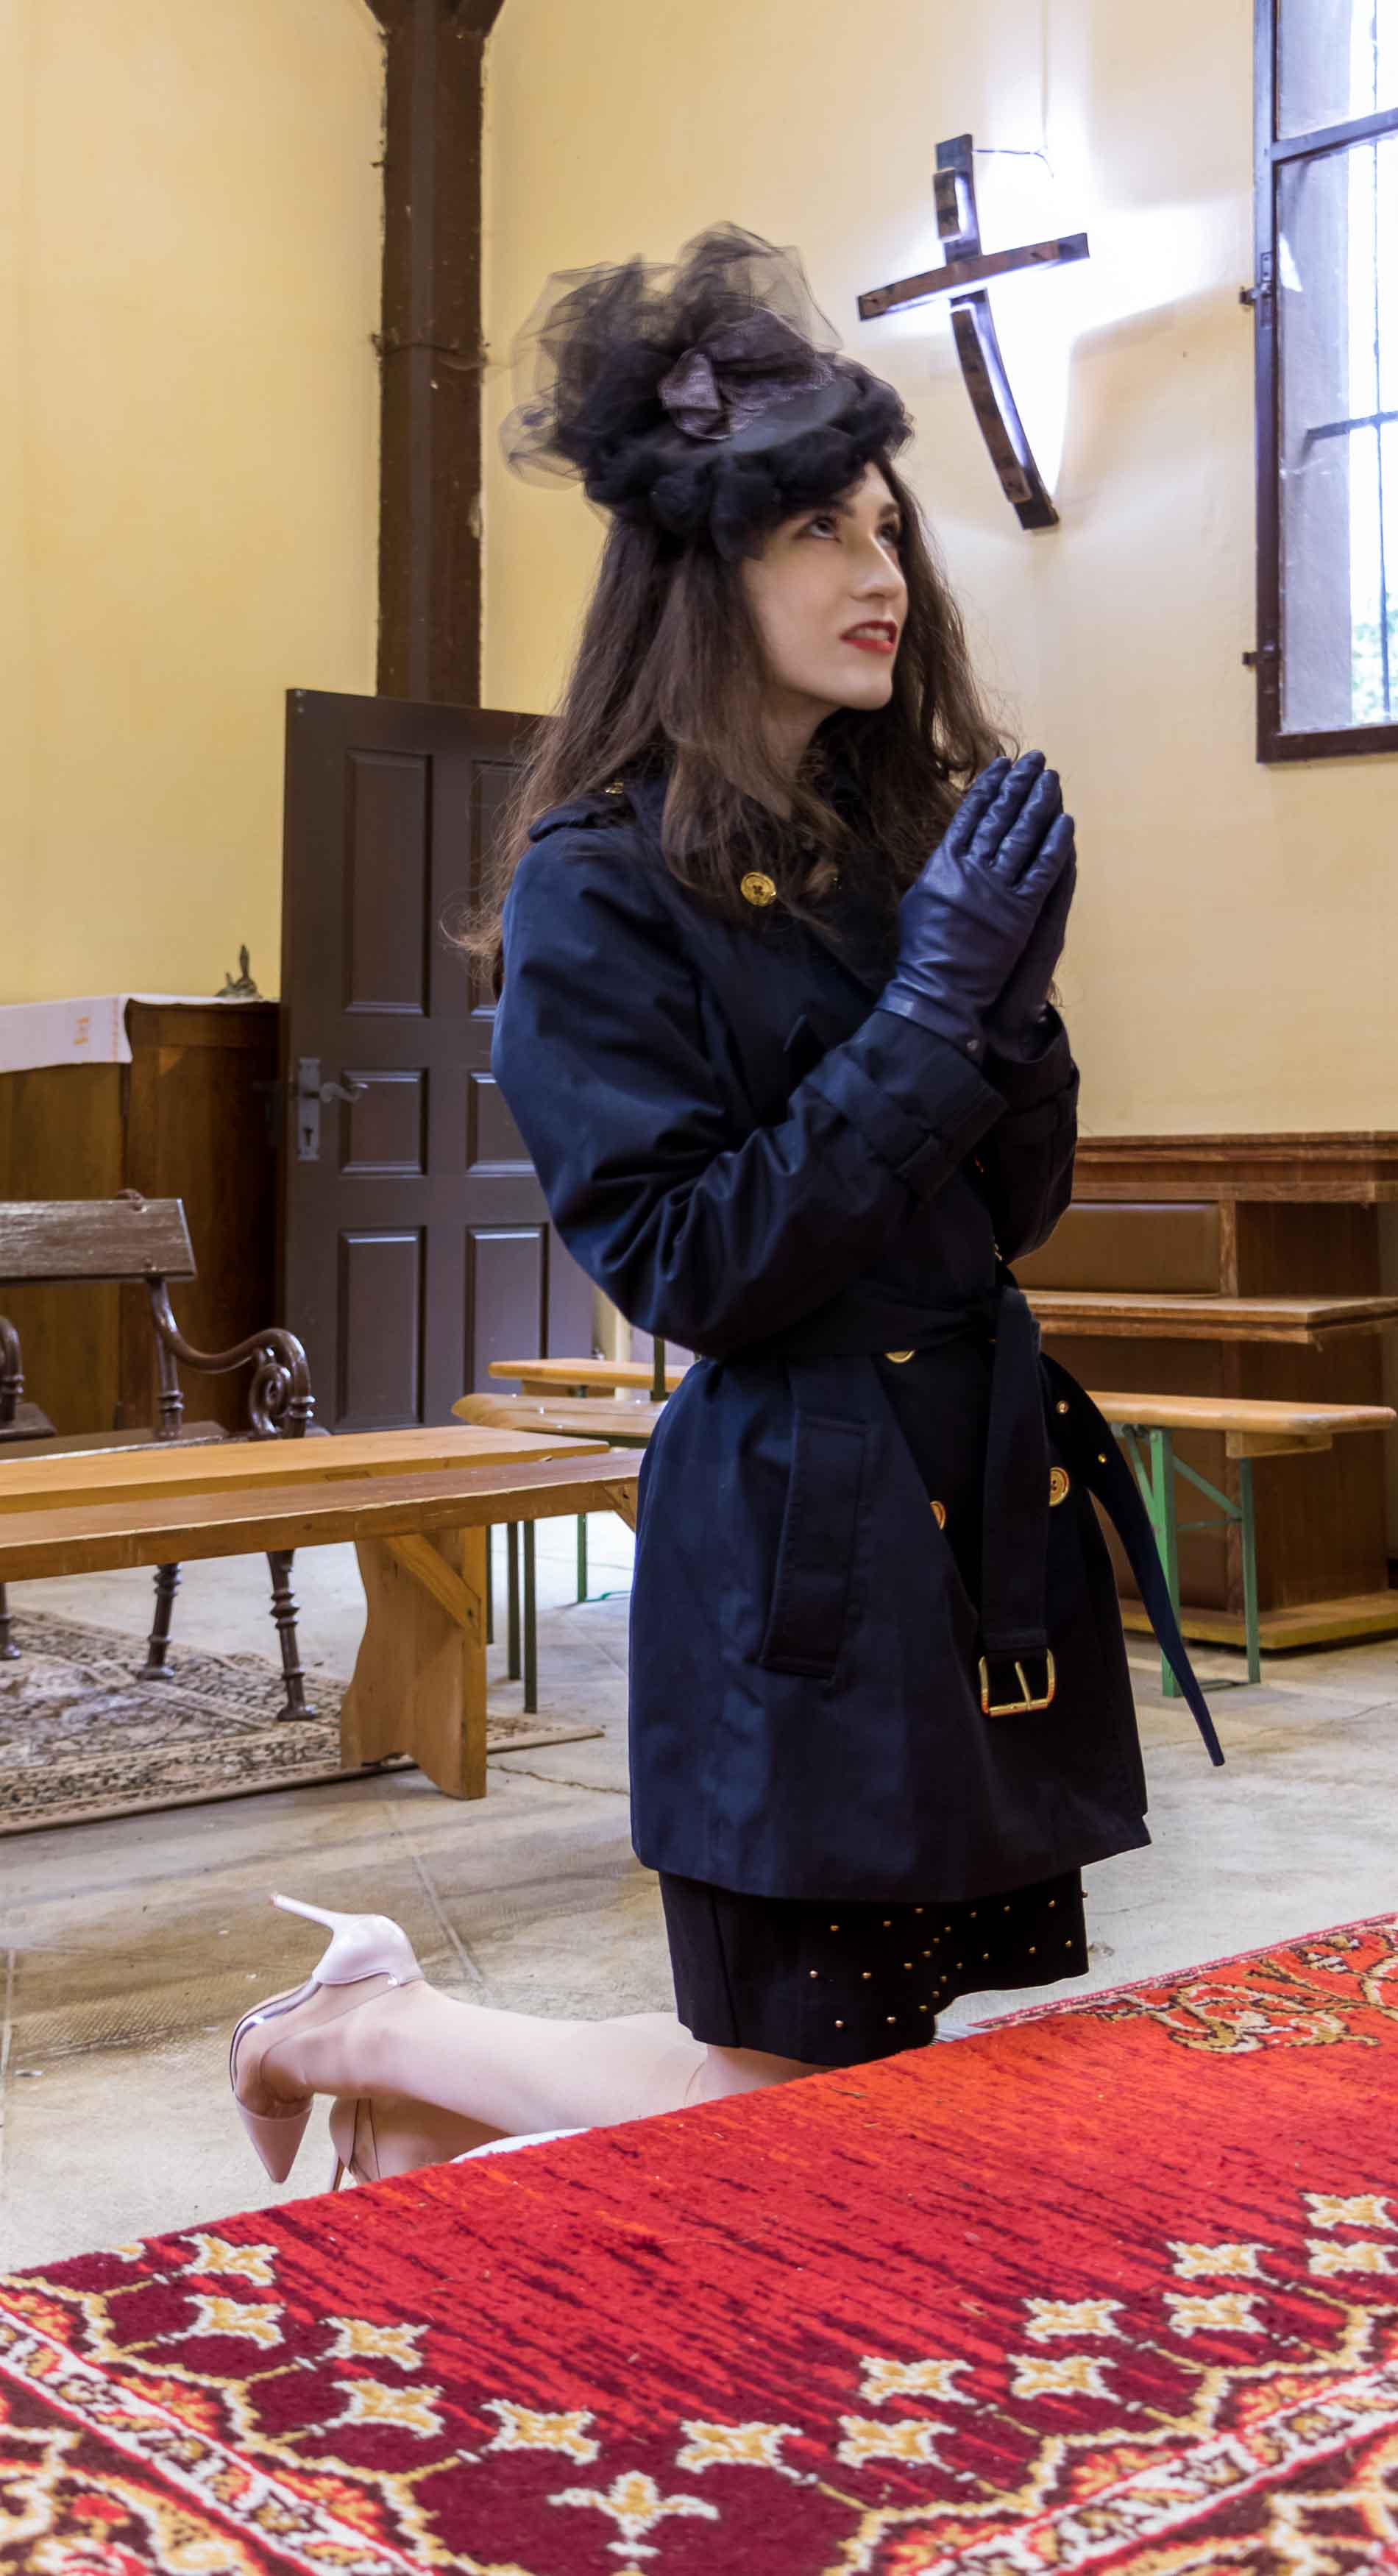 Fashion Blogger Veronika Lipar of Brunette from Wall Street dressed in blue Burberry trench coat, Gianvito Rossi plexi pumps, small black white shoulder bag and hat in church praying